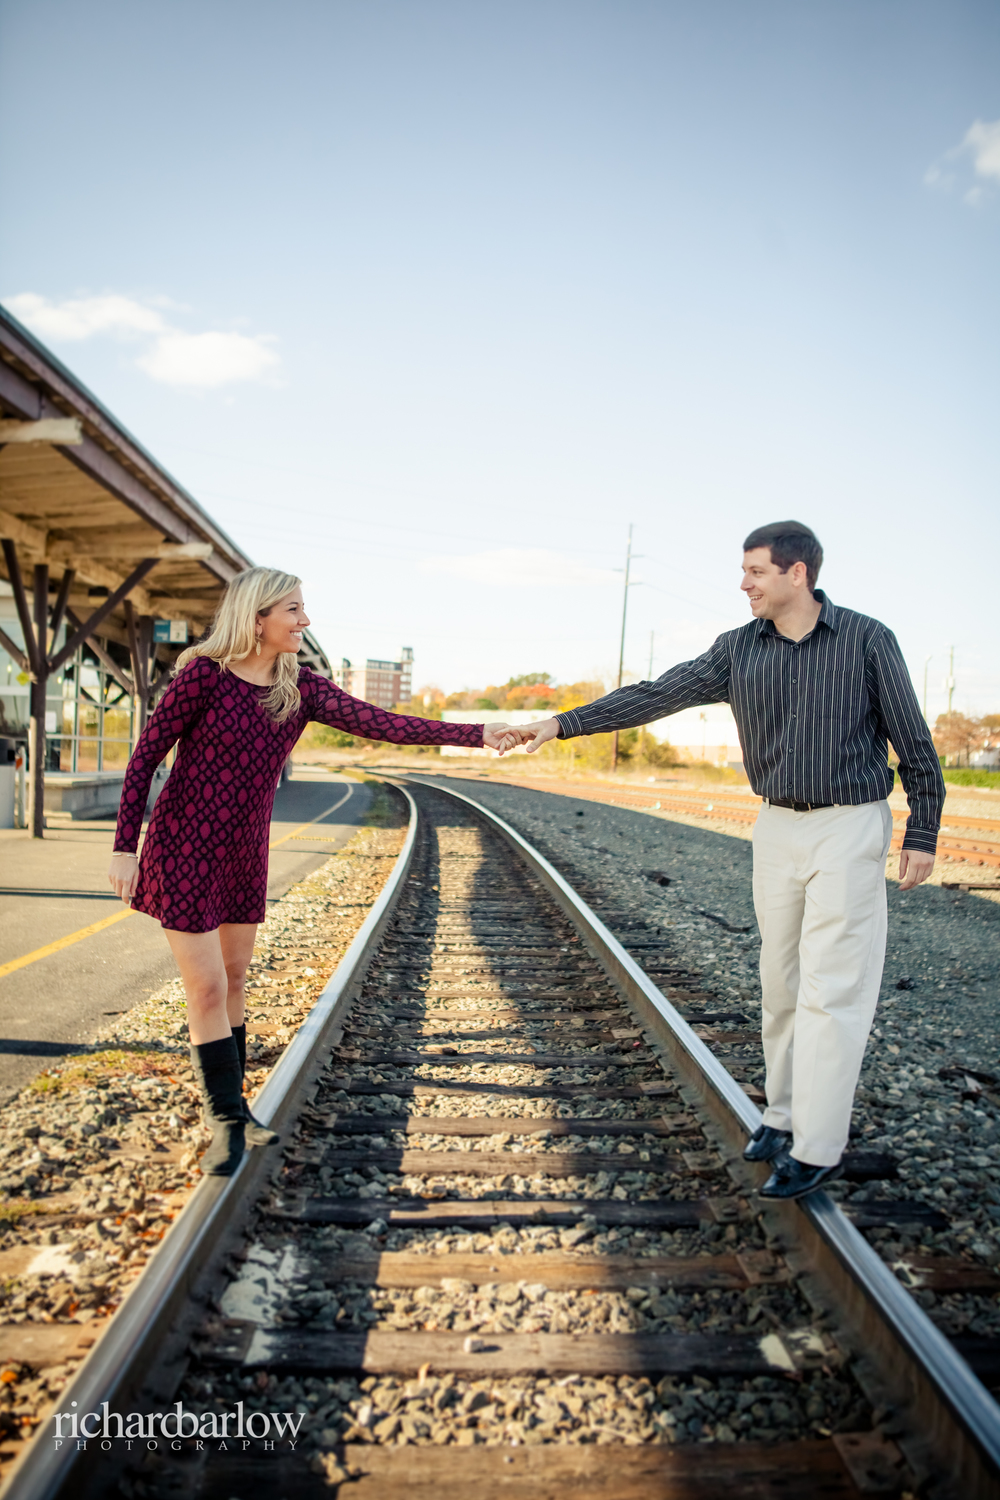 richard barlow photography - Garrett and Heather Engagement Session Raleigh-1.jpg